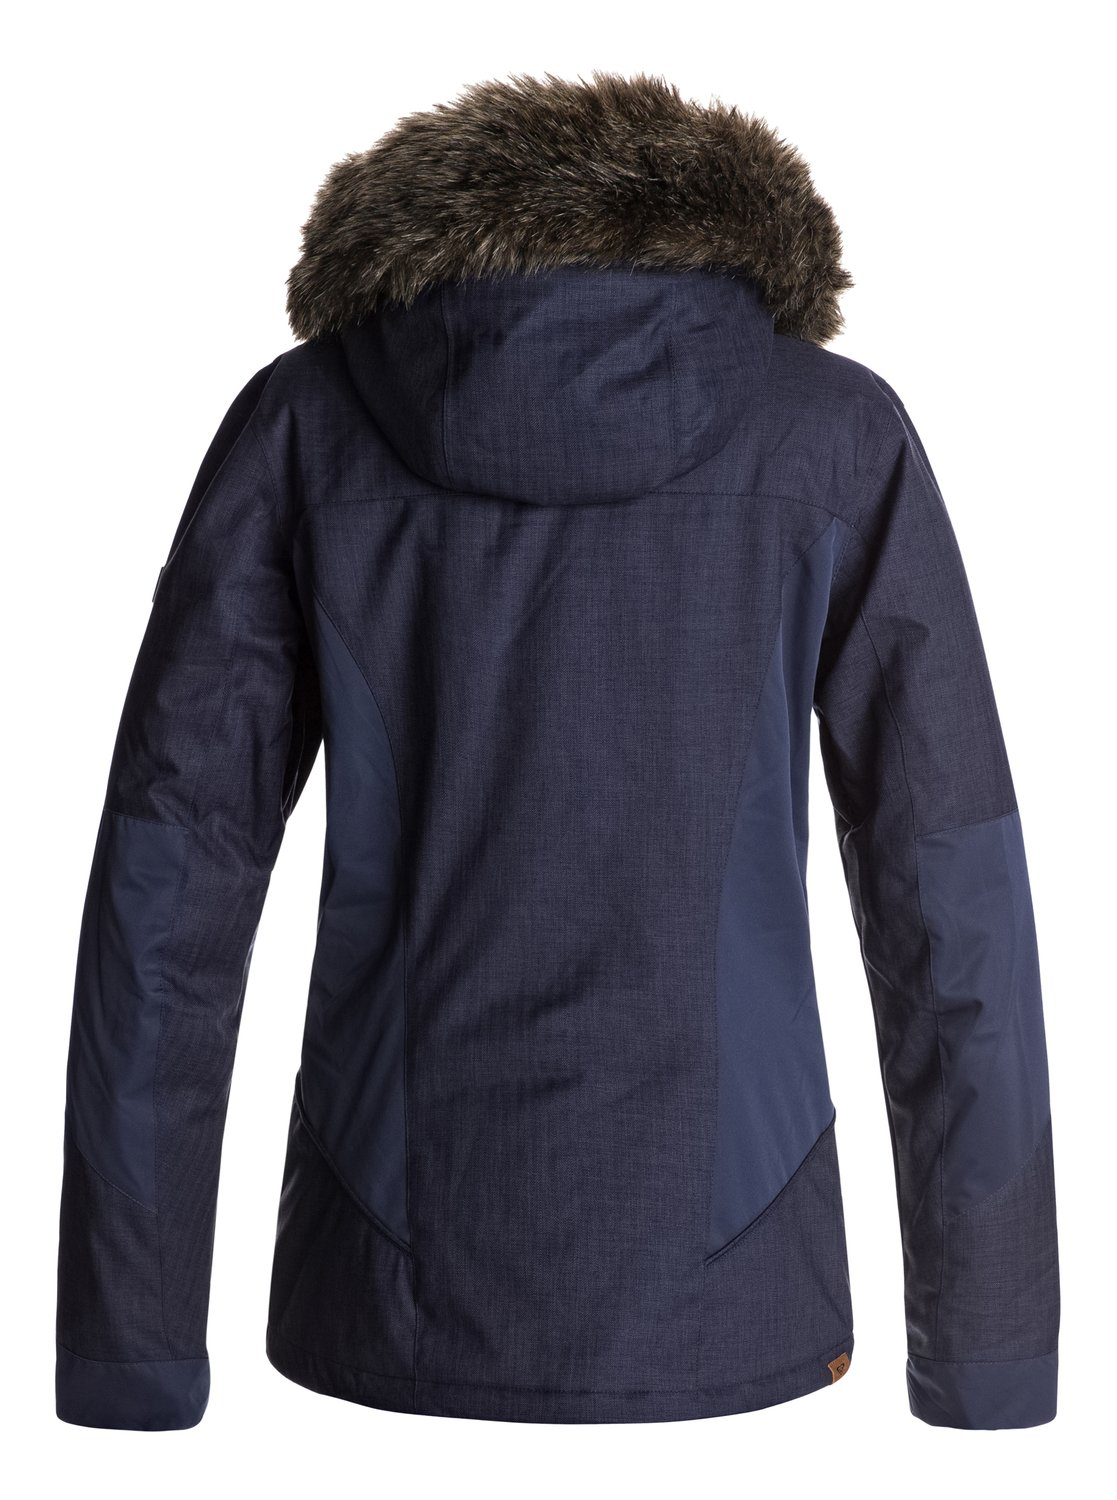 De Snow Roxy Femme Erjtj03108 Atmosphere Veste Pour 58Eq5Pw